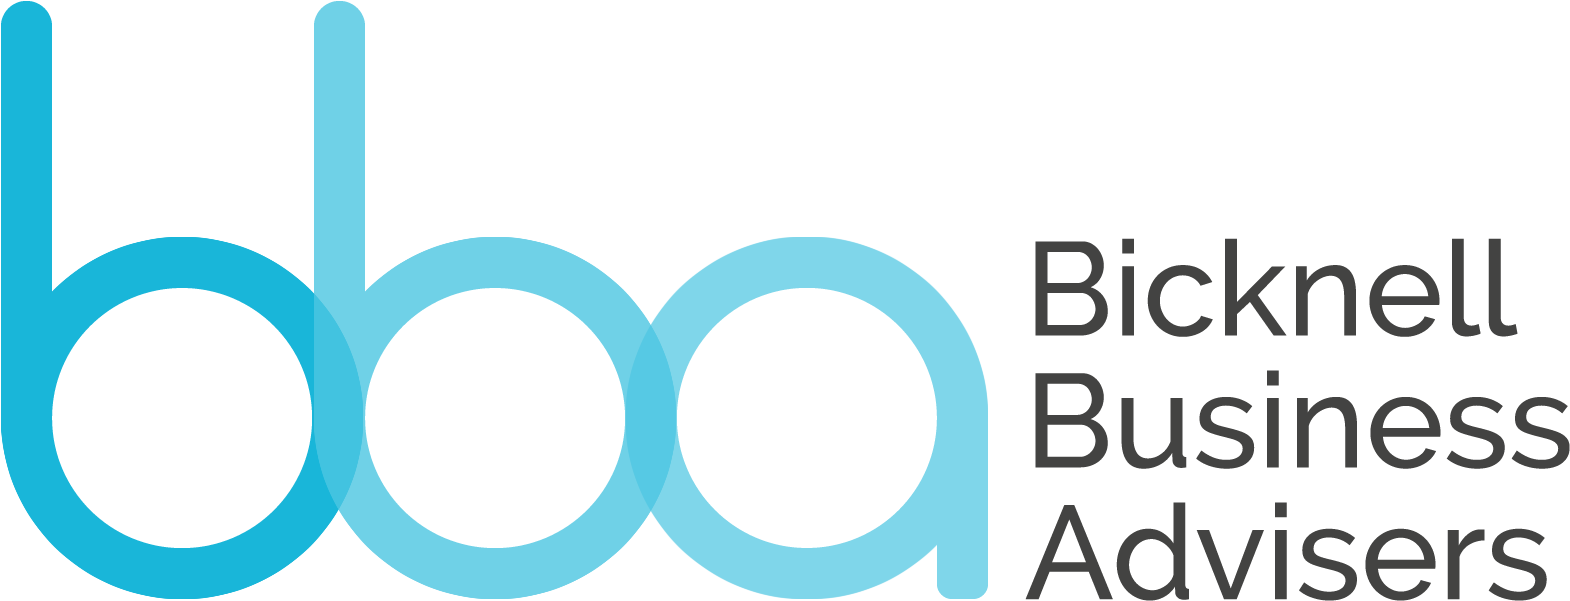 bba Bicknell Business Advisers